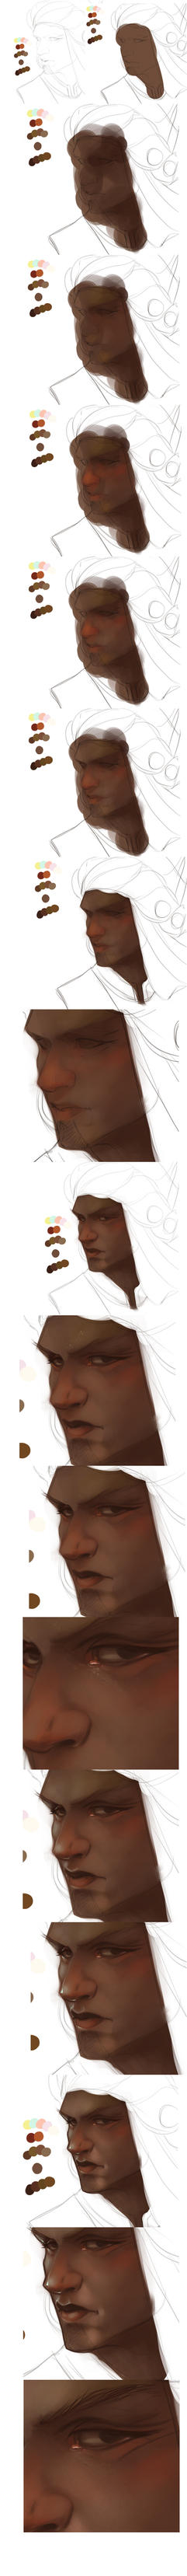 wrathion: the poorly put together screenshots by KimberlySwan